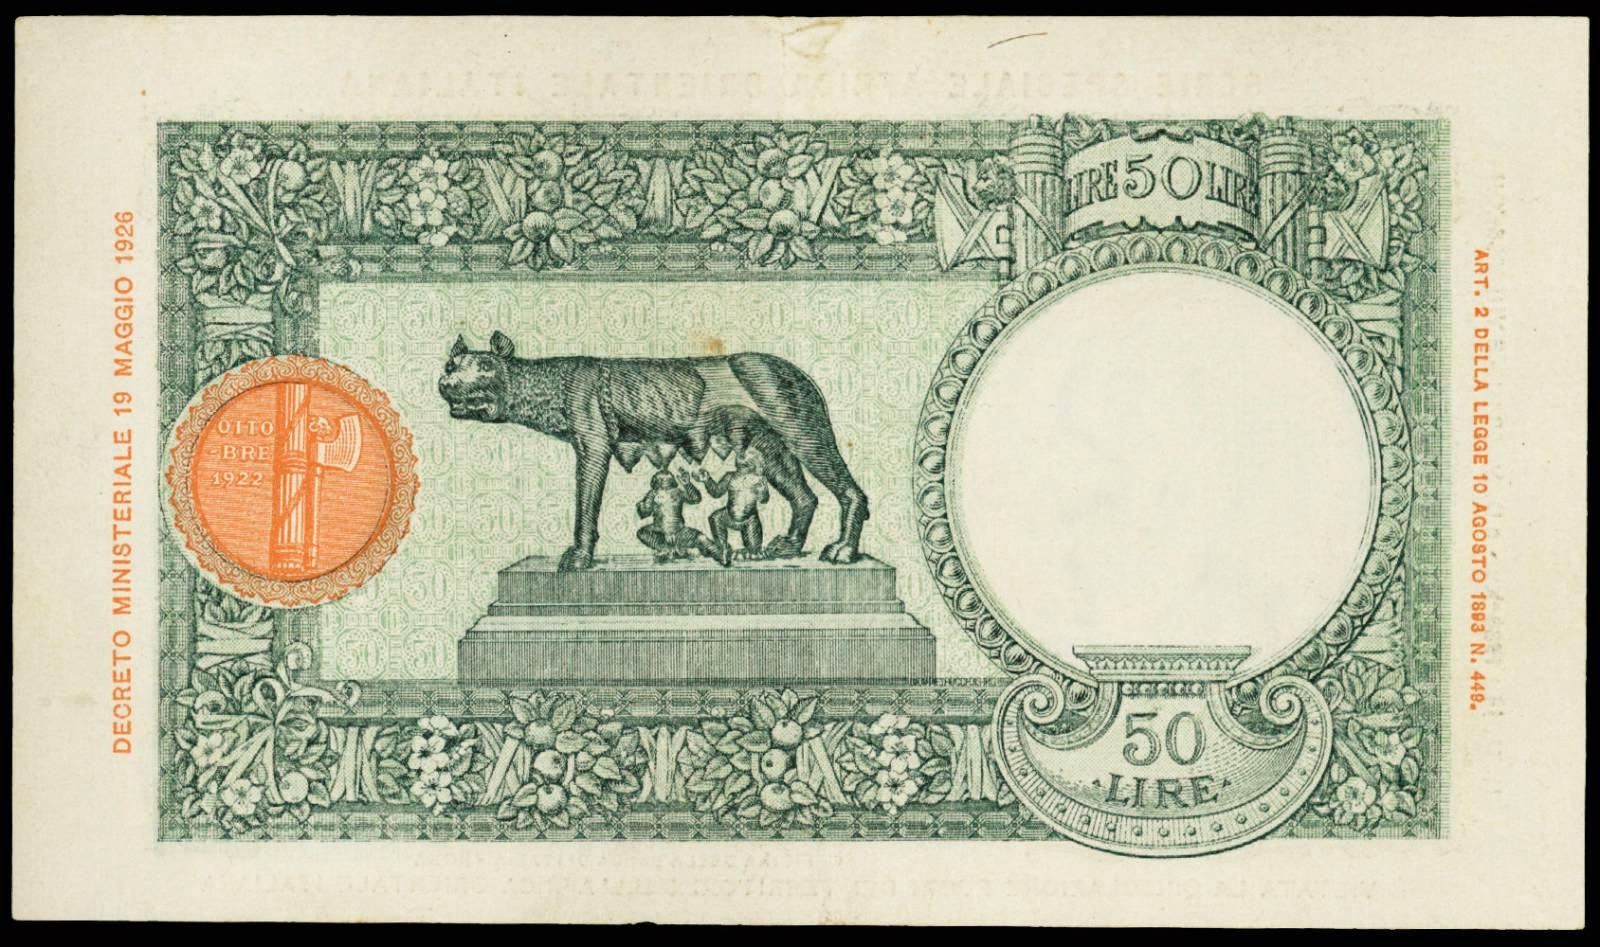 Italian East Africa paper money 50 Lire Bank note 1939